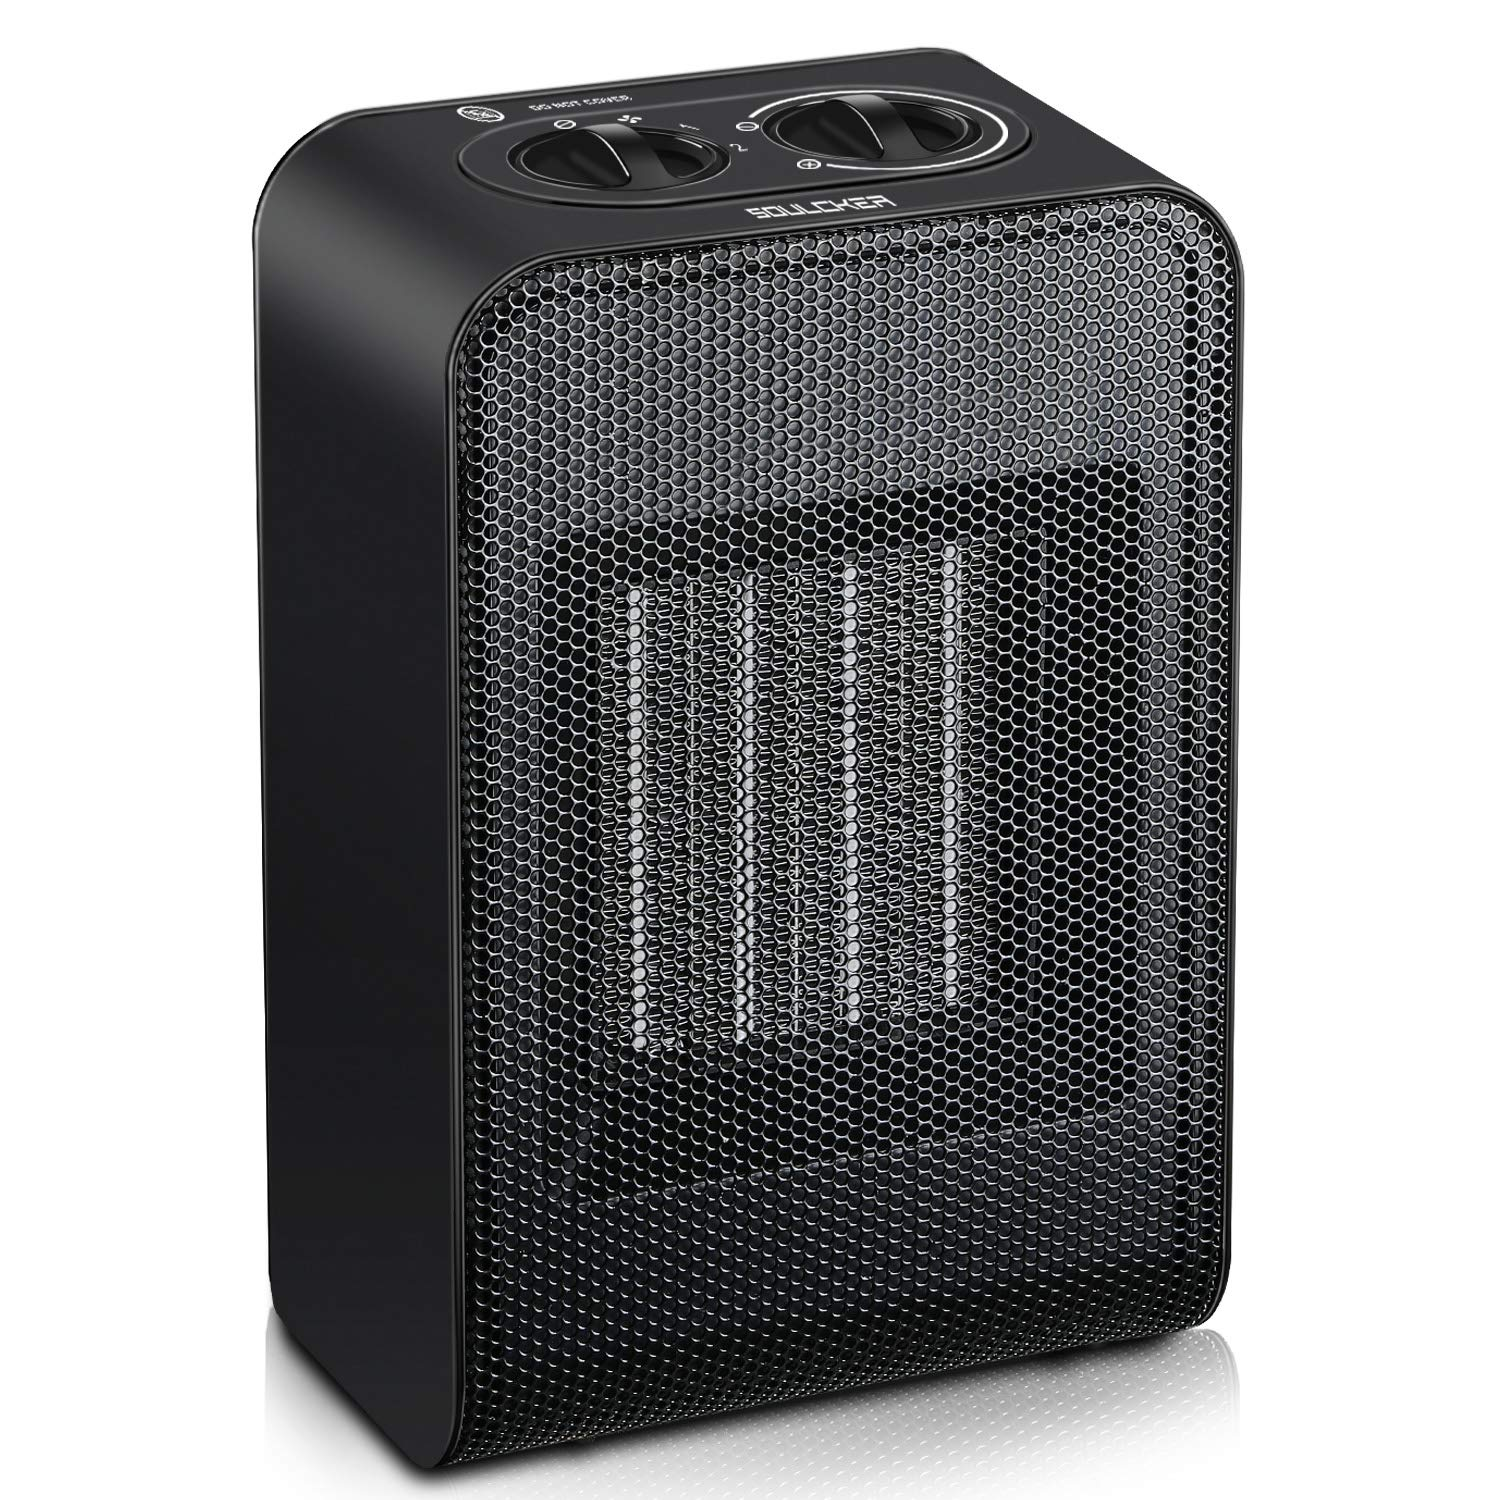 Soulcker Space Heater, Portable Heater With 750W 1500W Power Setting, 2 Seconds Heat-up, Tip-over and Over-heat Protection, Ceramic Small Space Heater for Office, Home, Indoor Use – Black